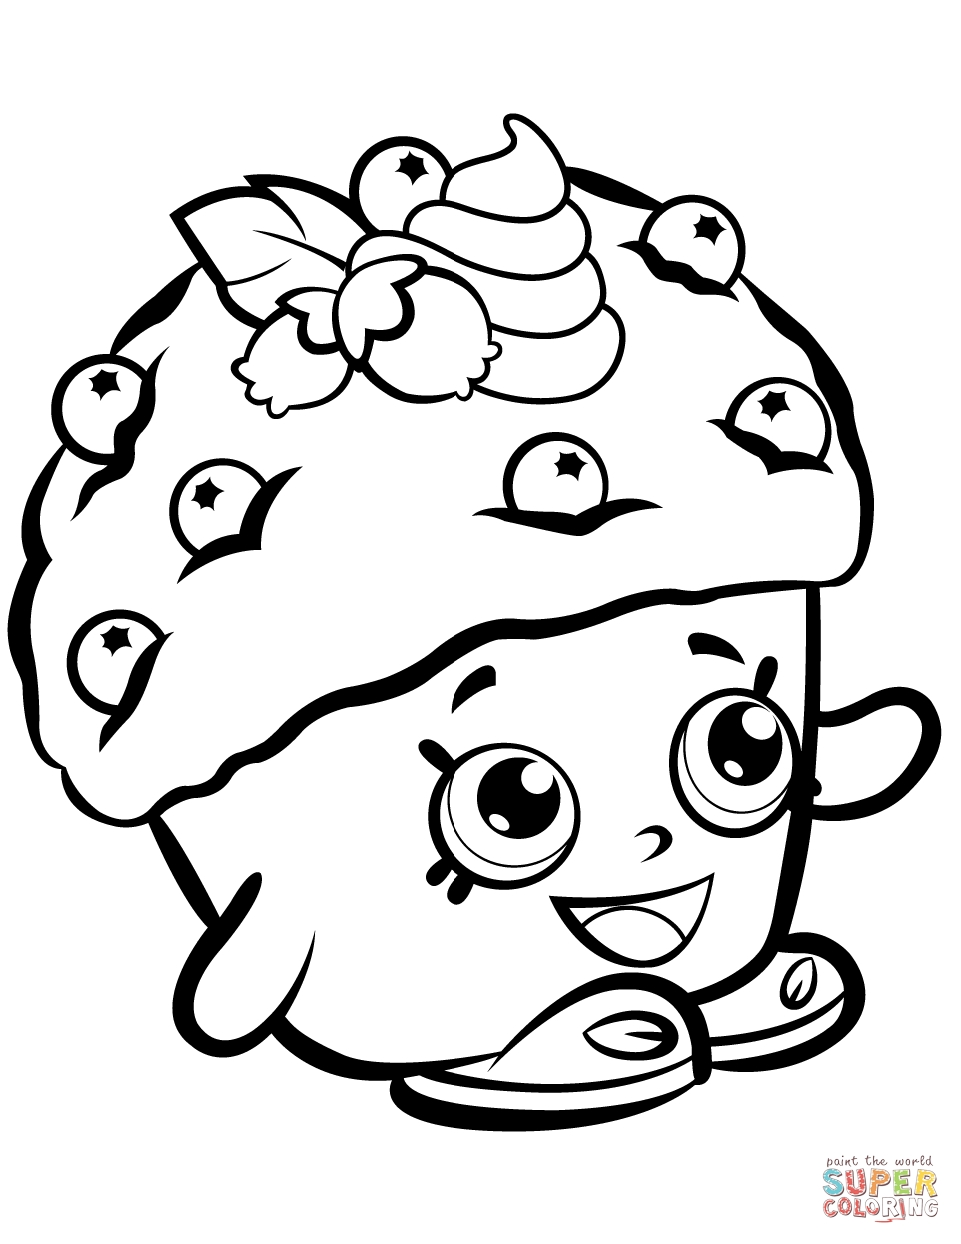 shopkin coloring pages - mini muffin shopkin